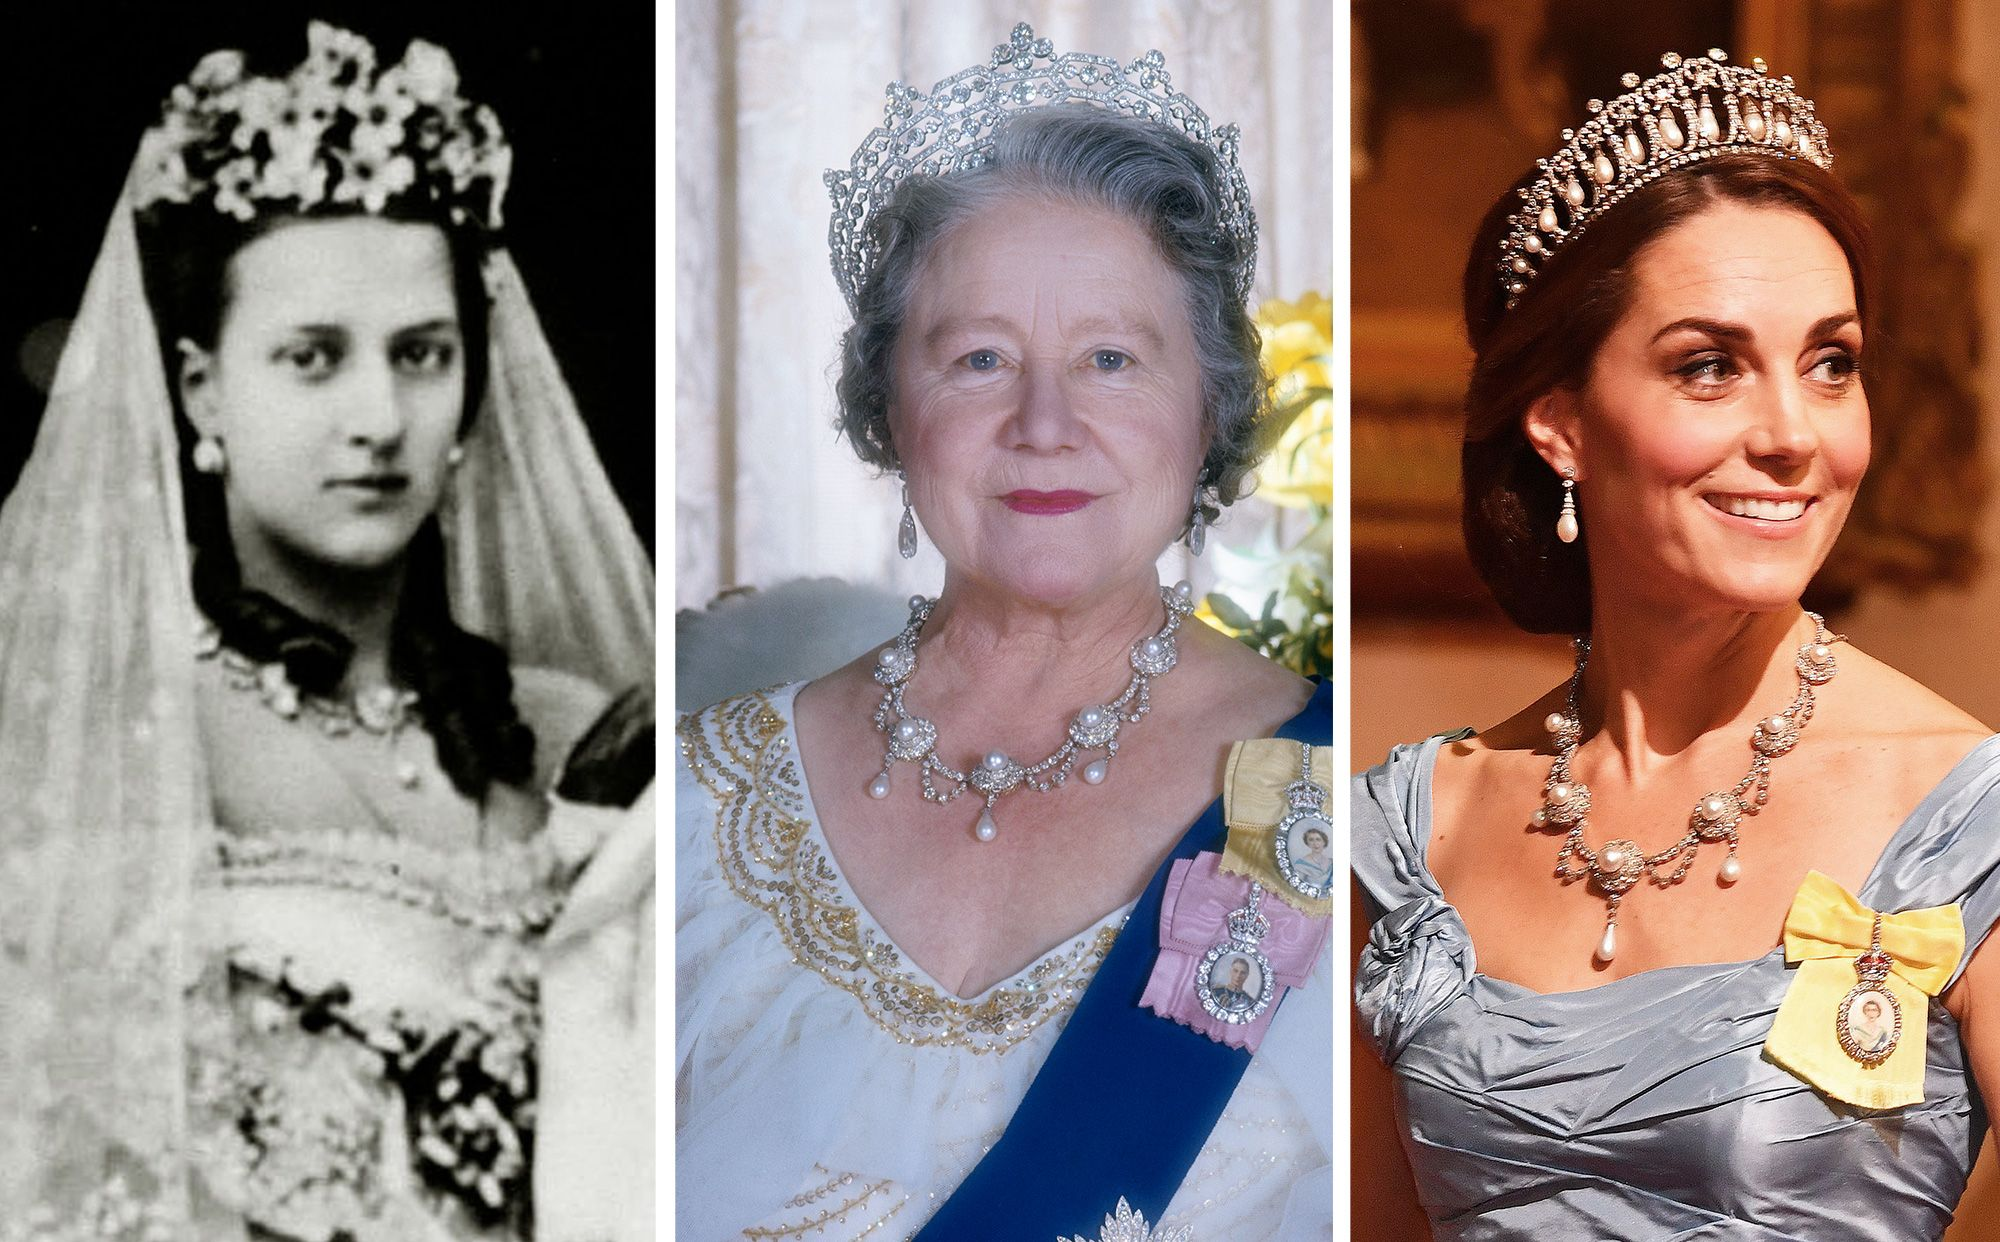 Queen Alexandra's Wedding Necklace